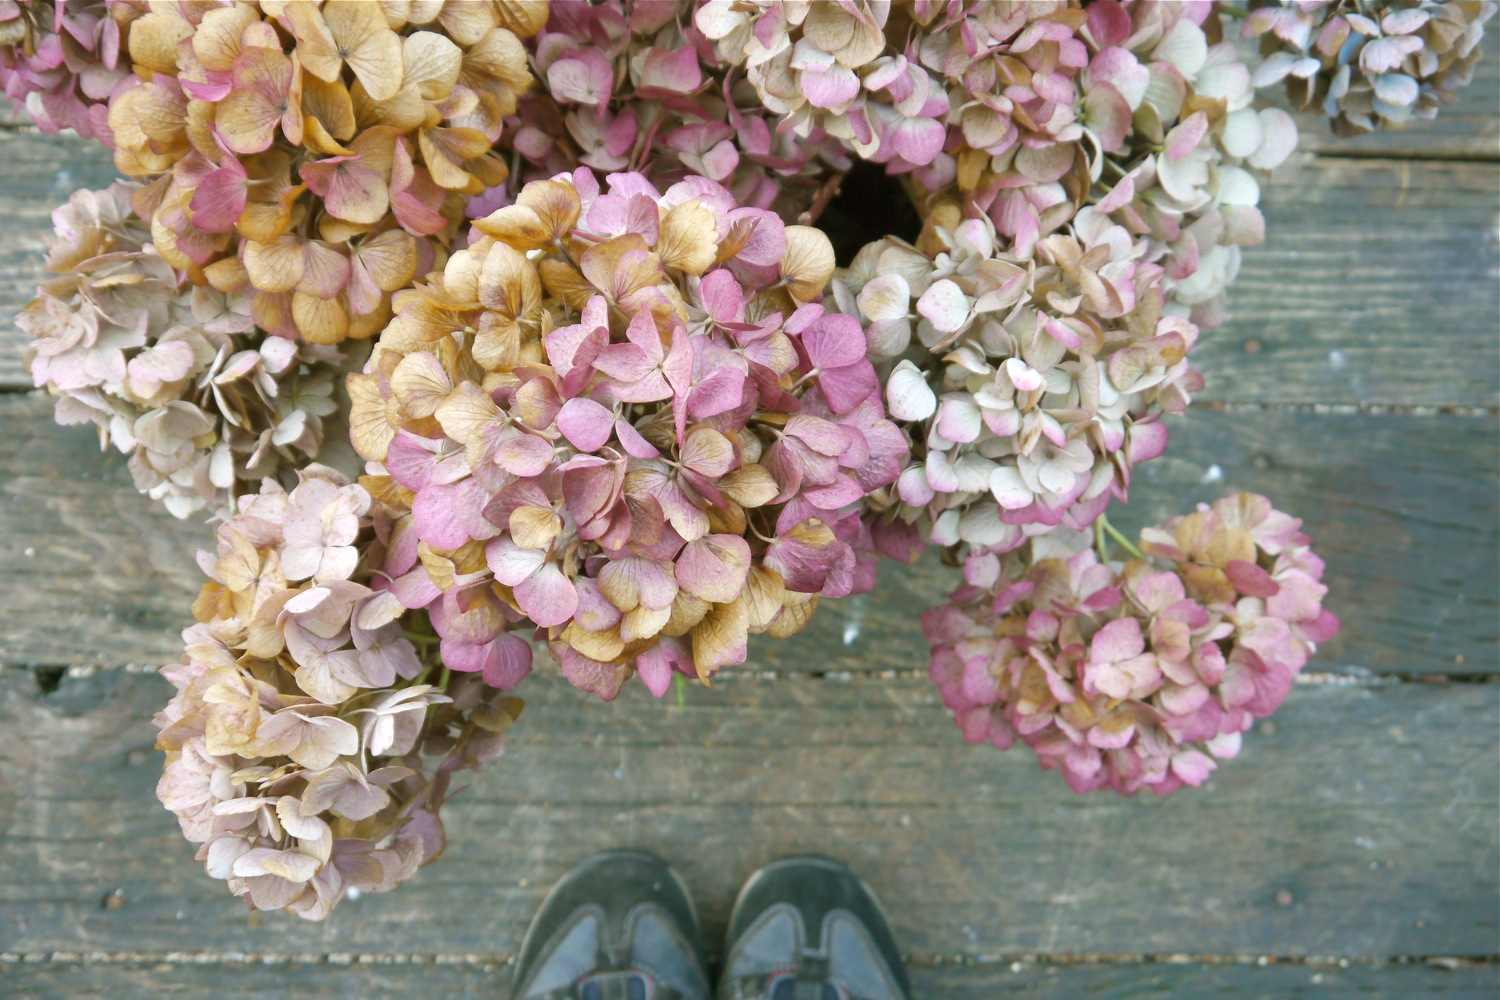 How to dry garden hydrangeas for wreath making, make a hydrangea wreath with garden hydrangeas, autumn hydrangeas, hydrangea flowers in autumn, pail of autumn hydrangeas, hydrangea wreath making, DIY hydrangea wreath